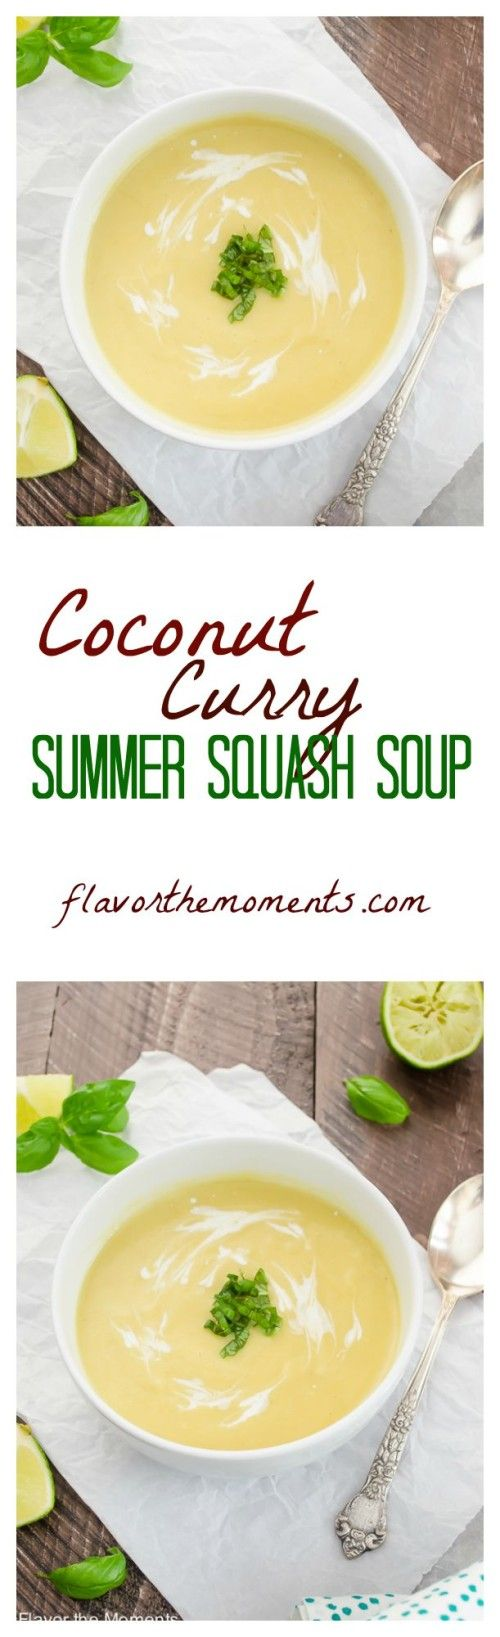 coconut curry summer squash soup - paleo, gluten free, dairy free